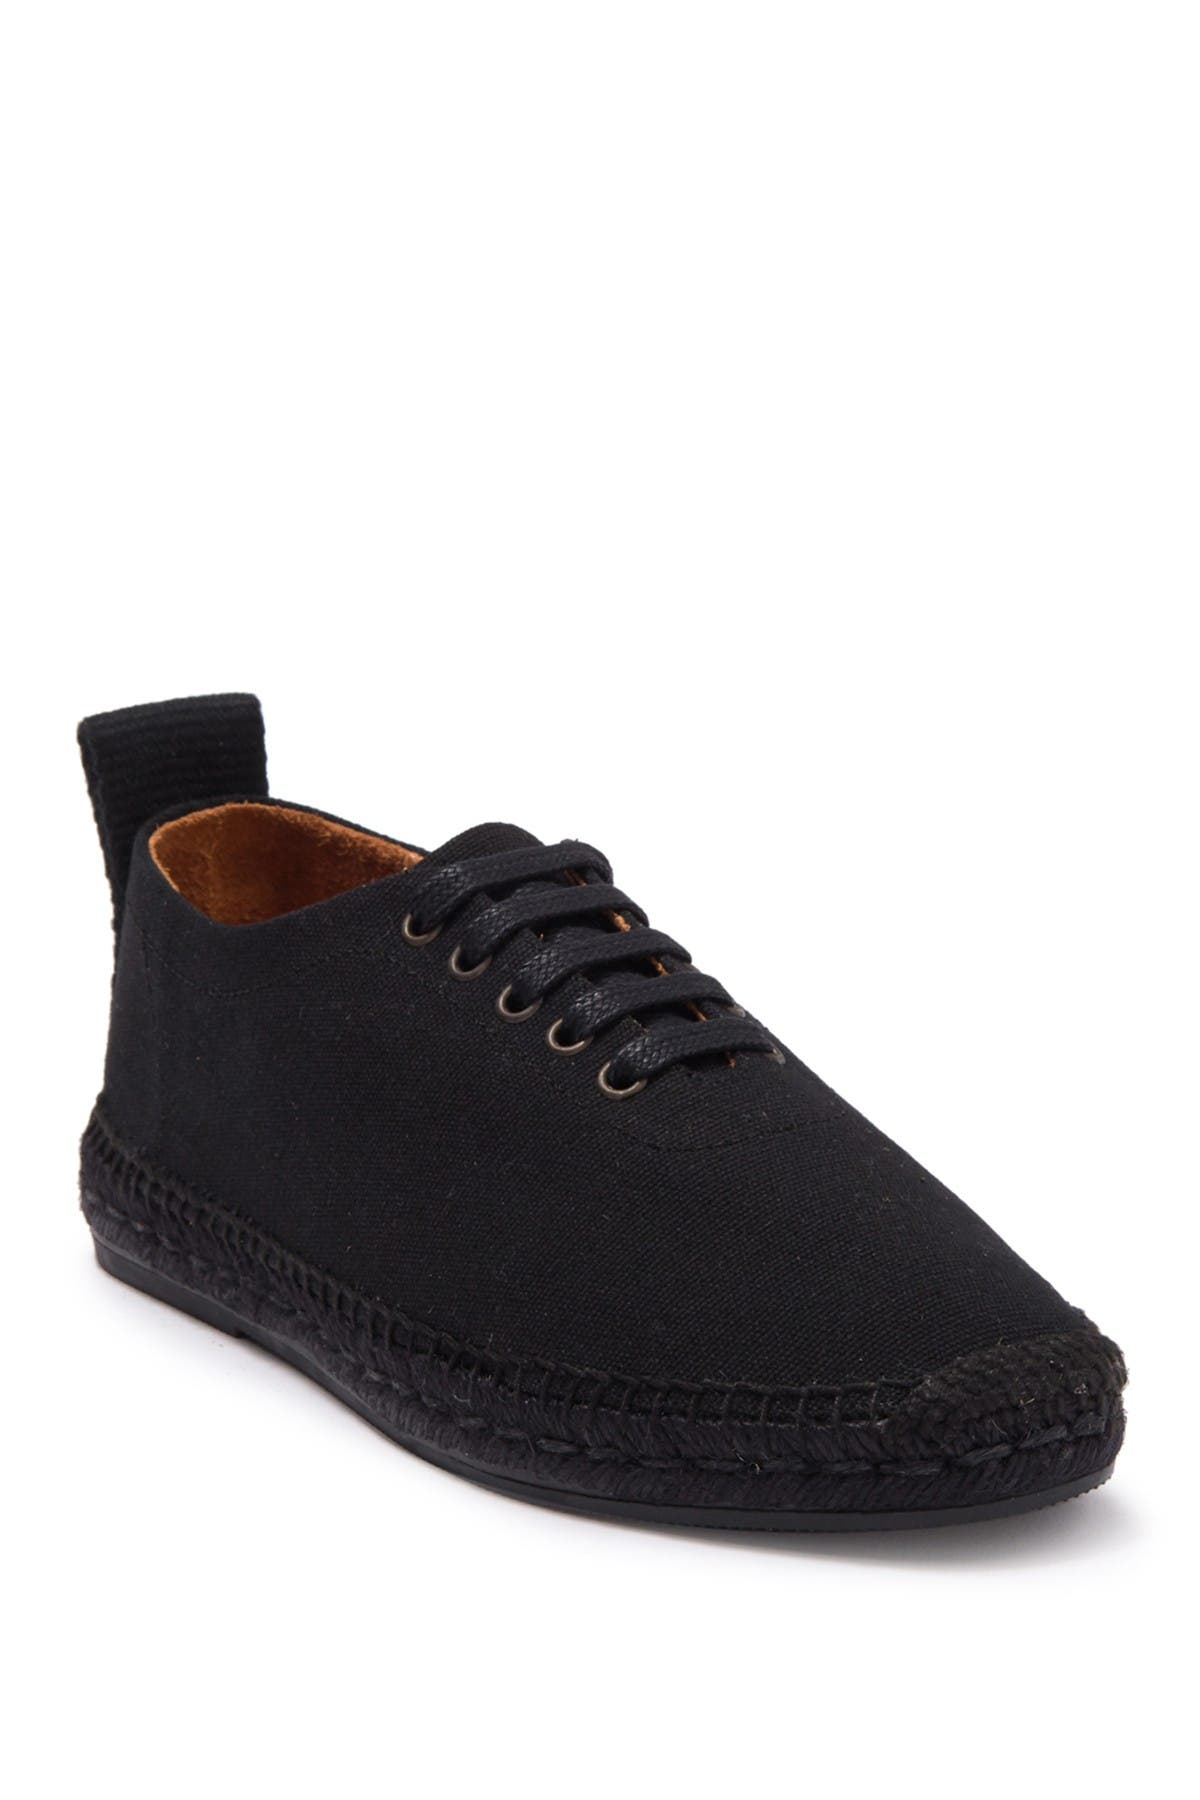 Image of Paloma Barcelo Tossa Low Top Sneaker